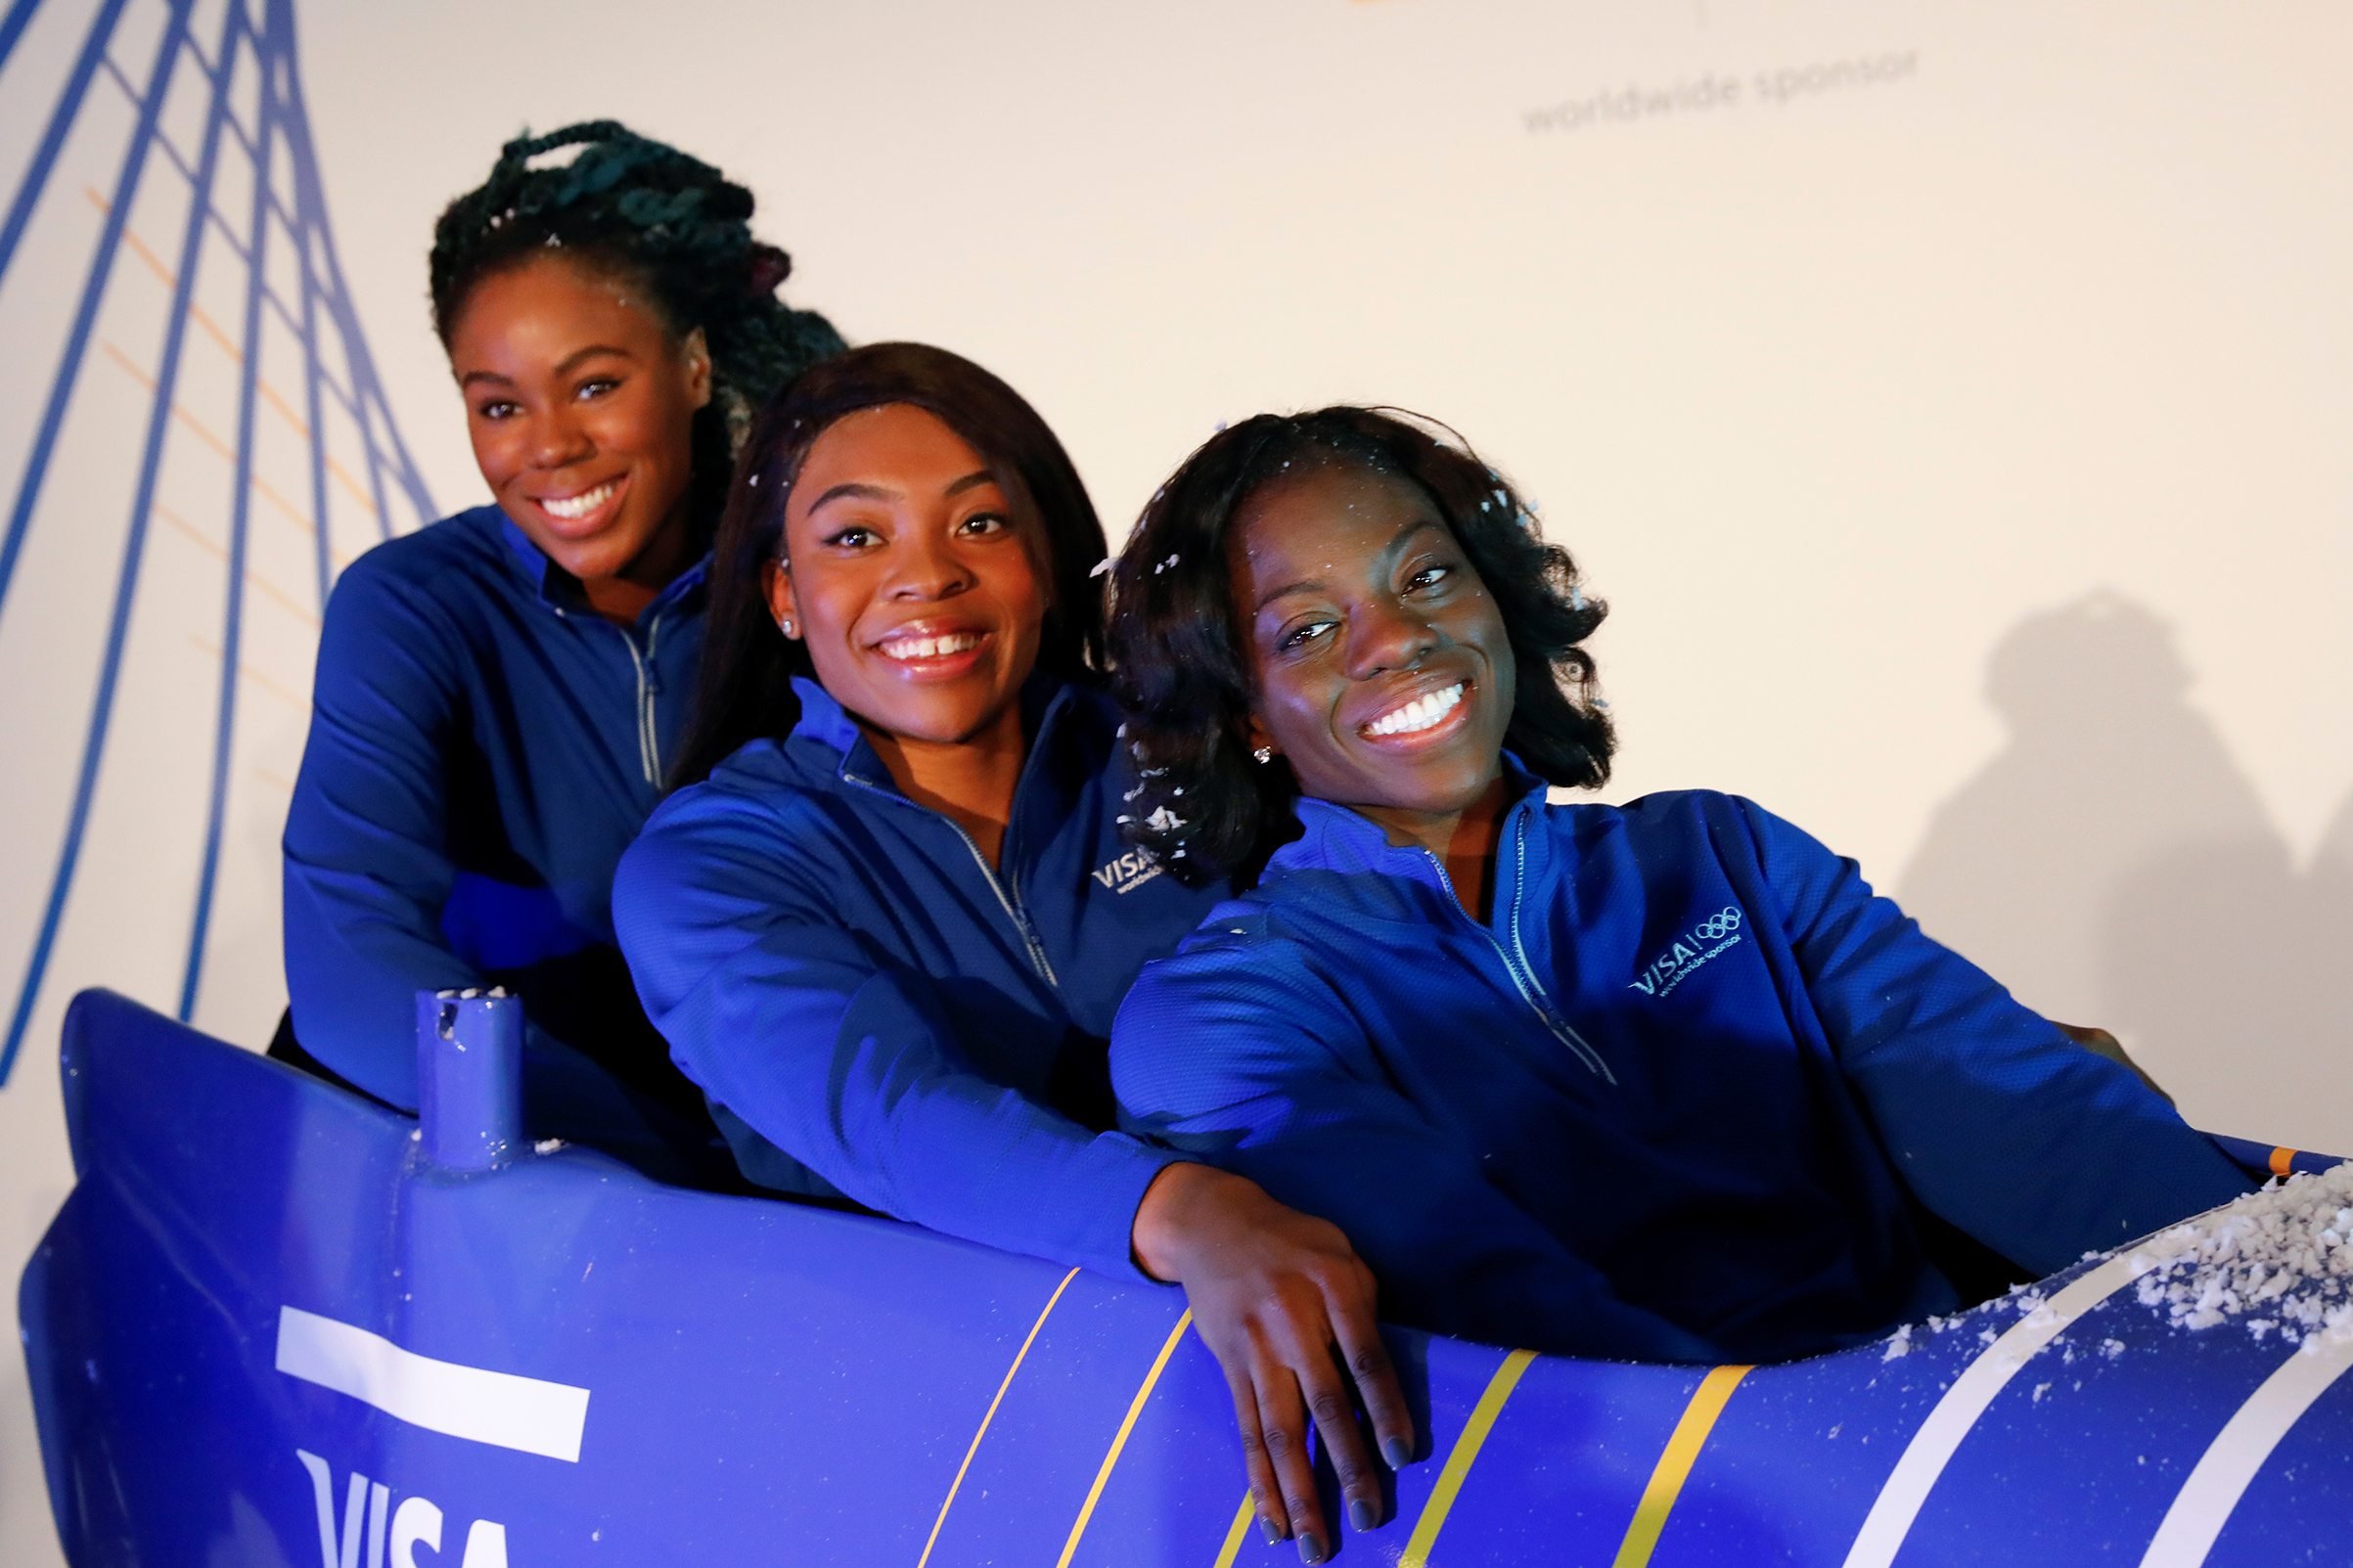 Seun Adigun, Ngozi Onwumere and Akuoma Omeoga, members of the Nigerian Women's Bobsled Team, during an event in New York on Dec. 7, 2017.